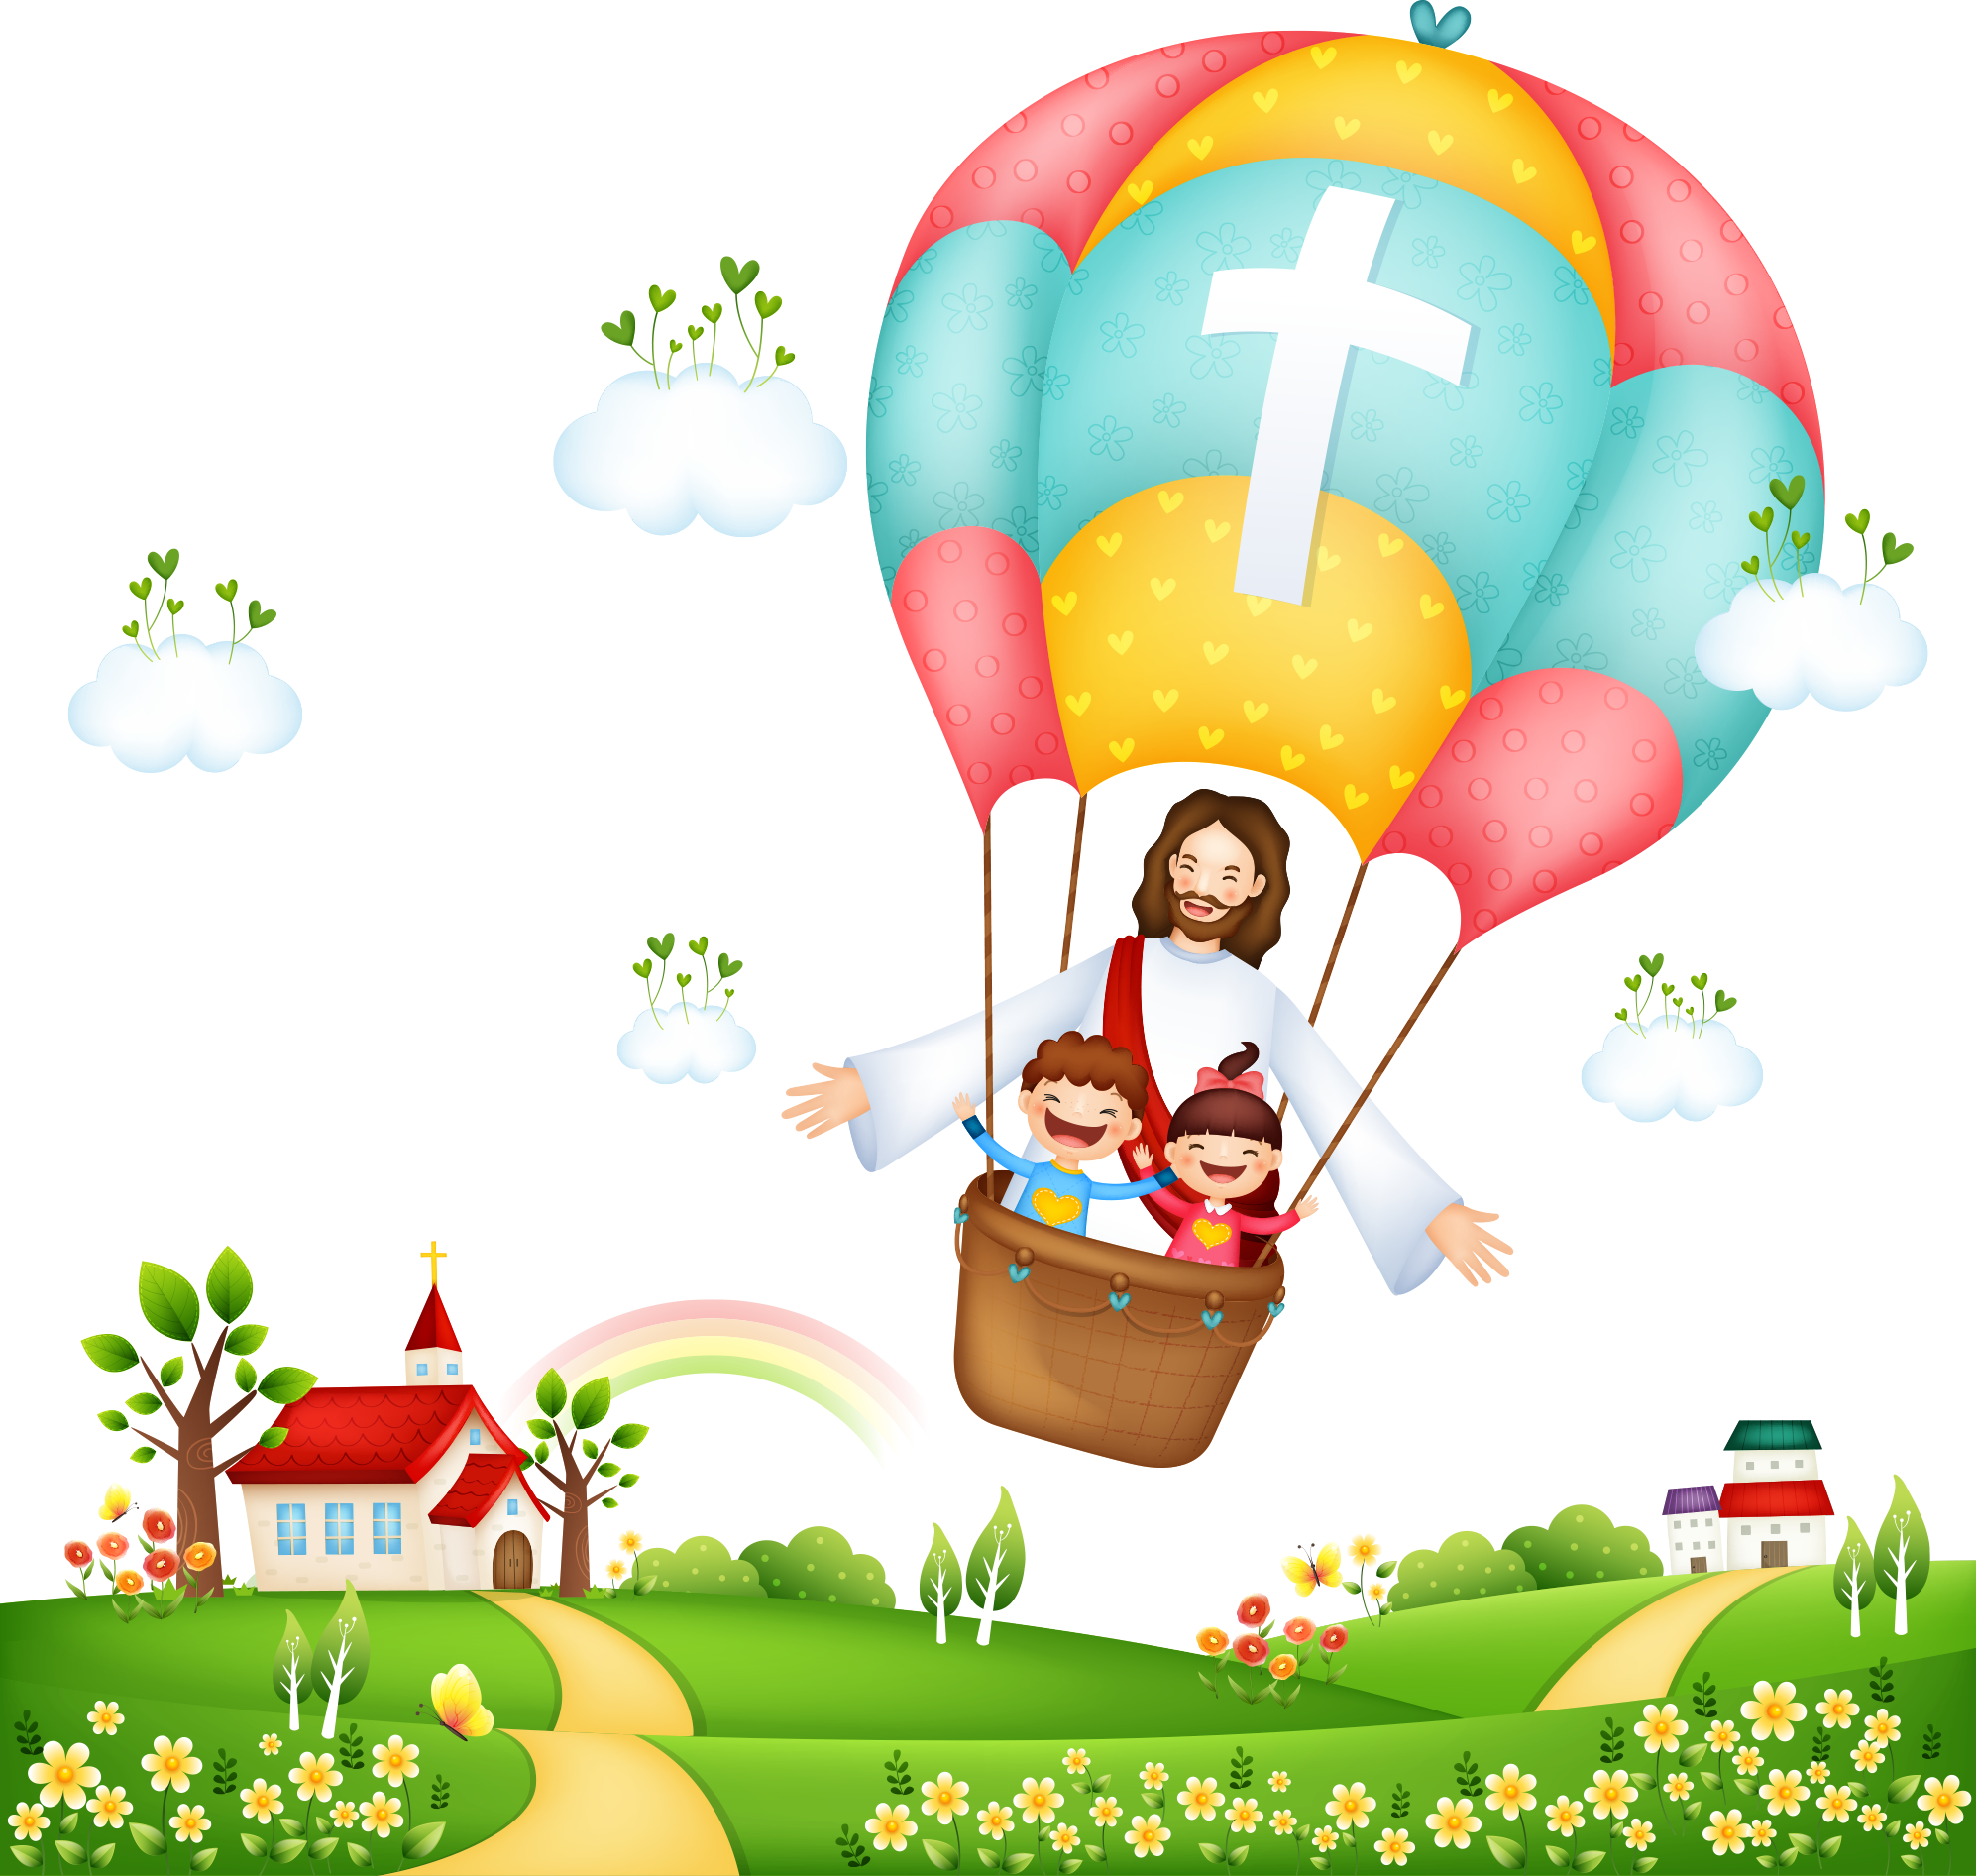 And On Balloon Illustration Jesus Hot The PNG Image